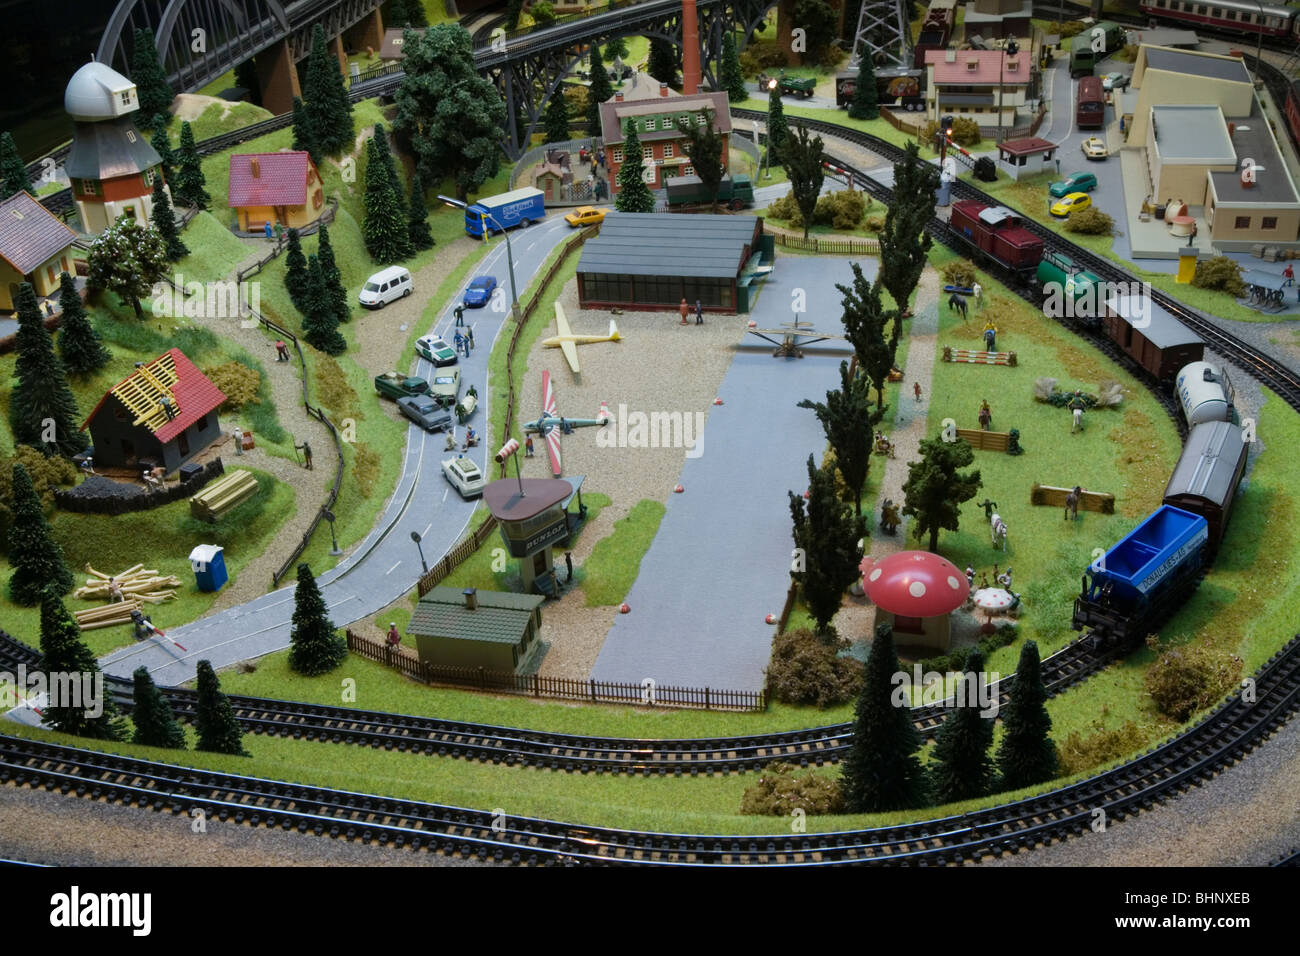 HO Scale Electric Model Toy train Large scale train set. Dresden Germany Stock Photo